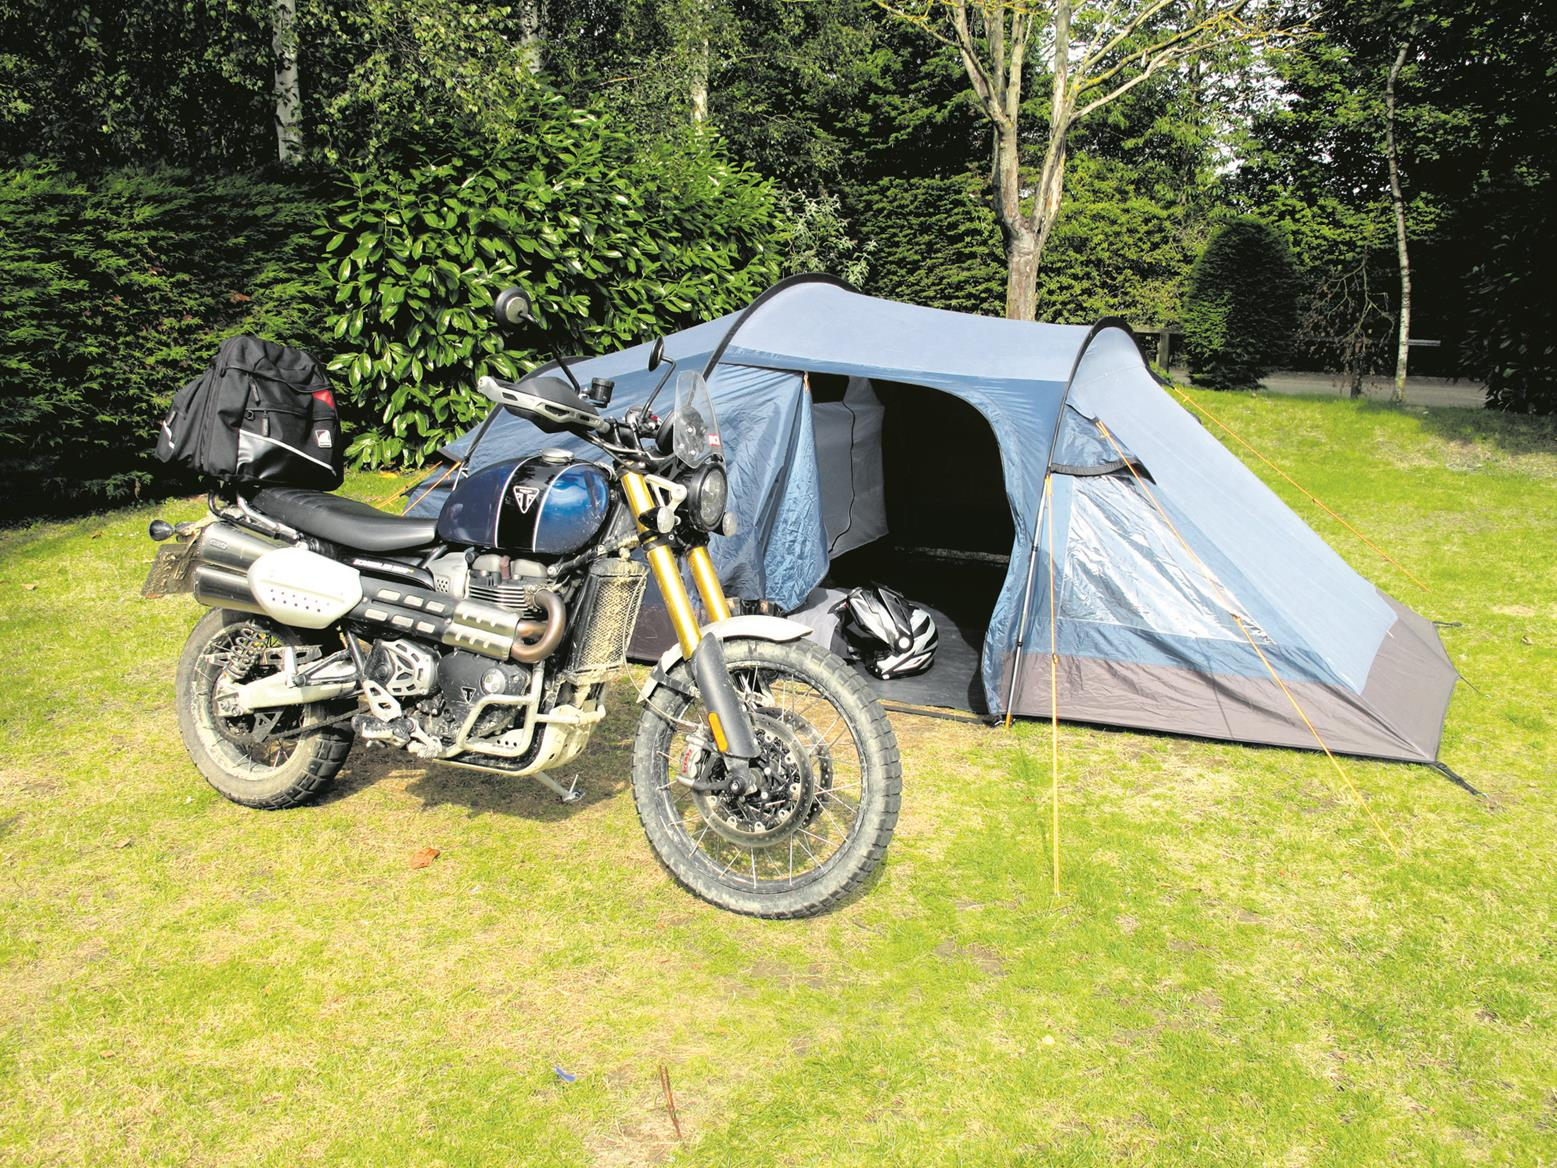 Camping on the Triumph Scrambler 1200 XE